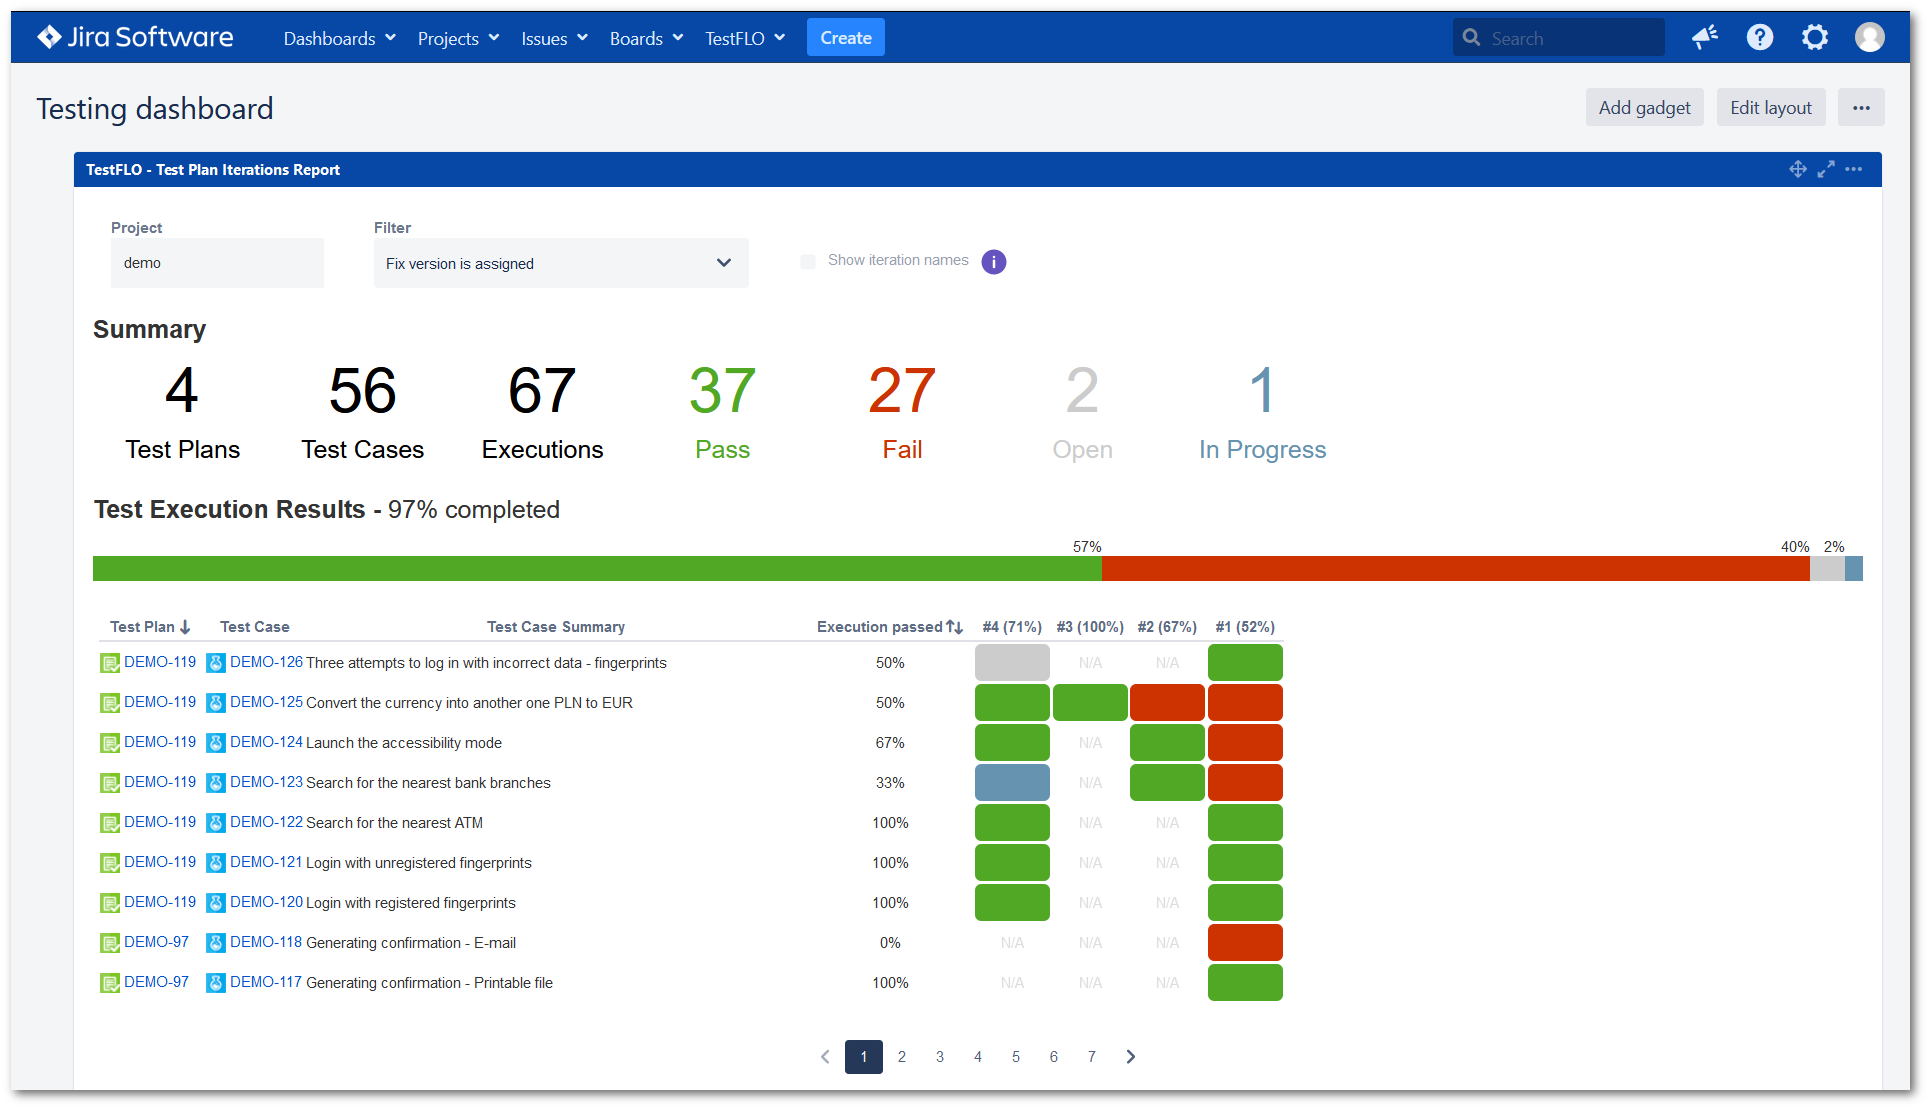 View of Test Plan Iterations Gadget on the Jira Dashboard